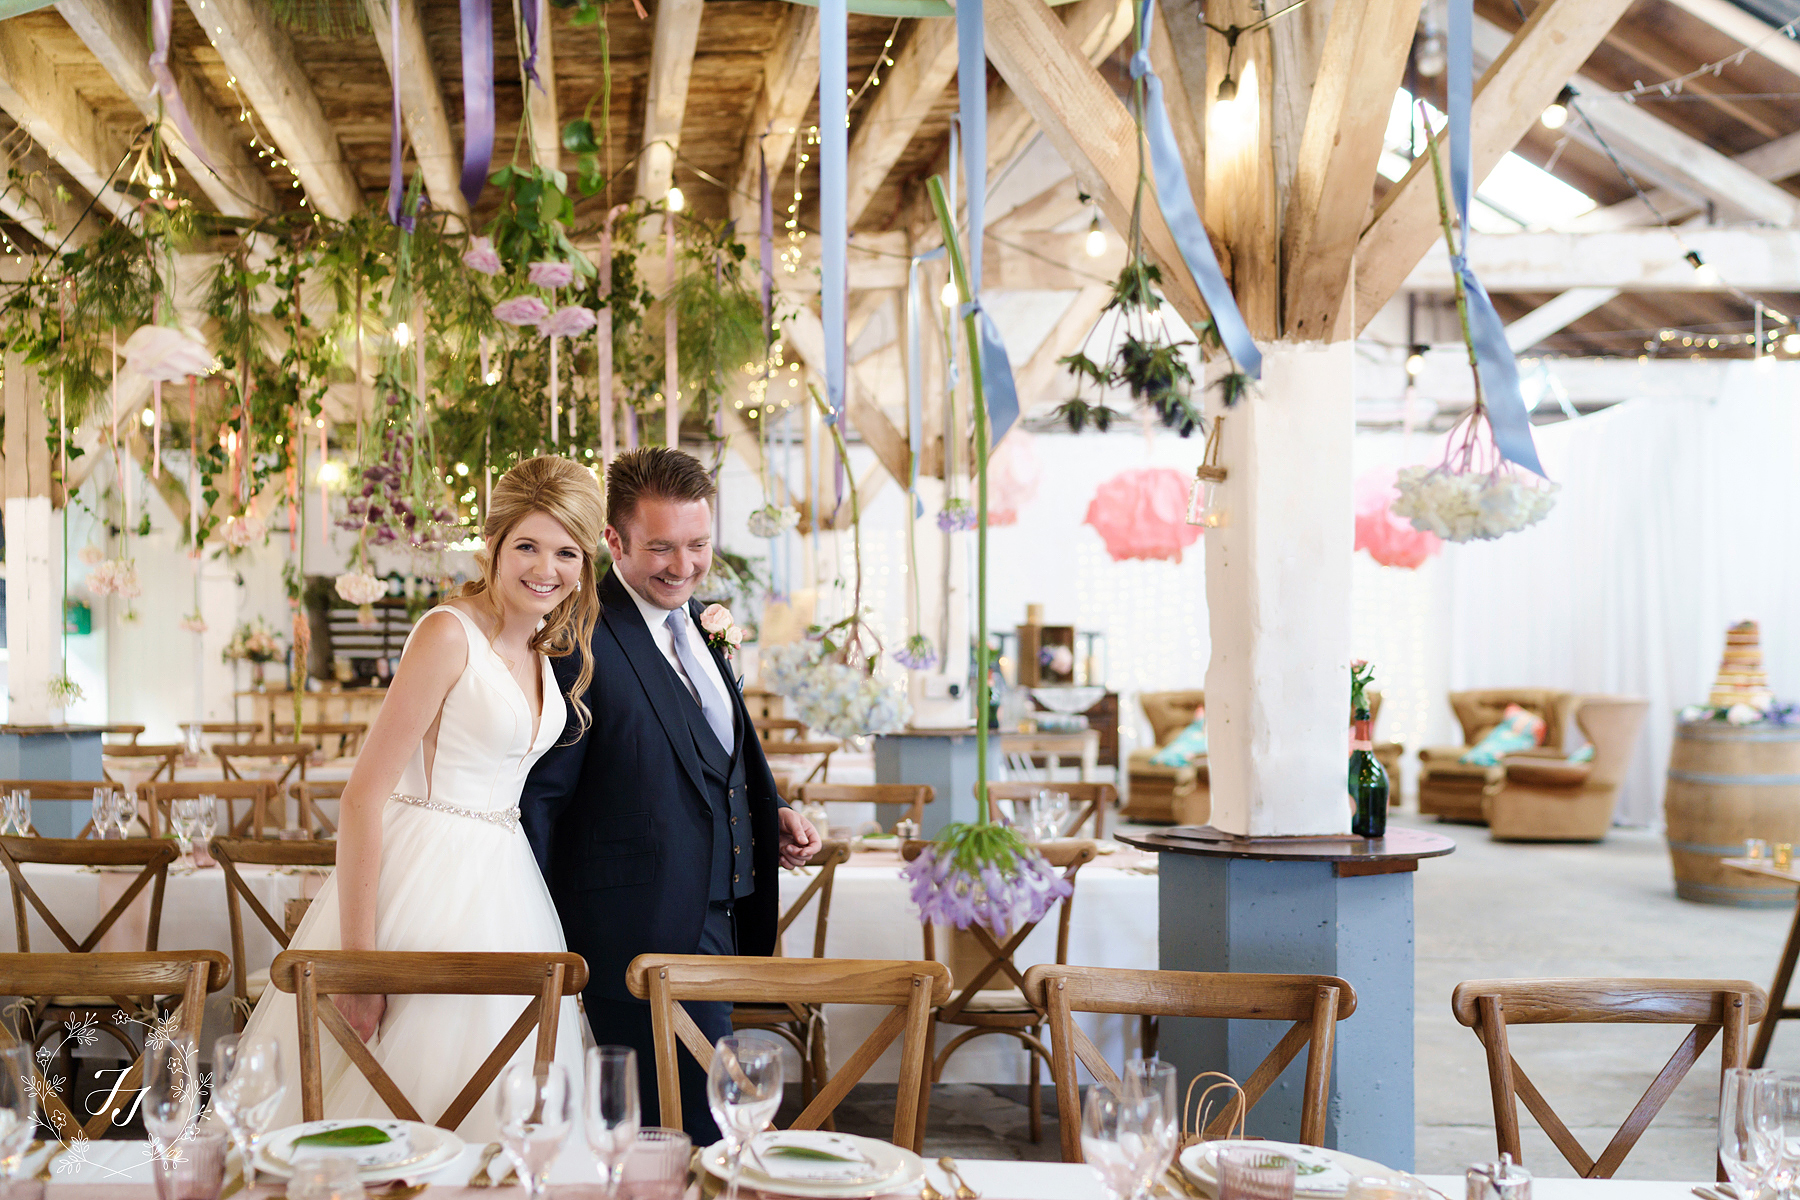 Victoria and Rickie admiring the railway barn in purleighs decorations